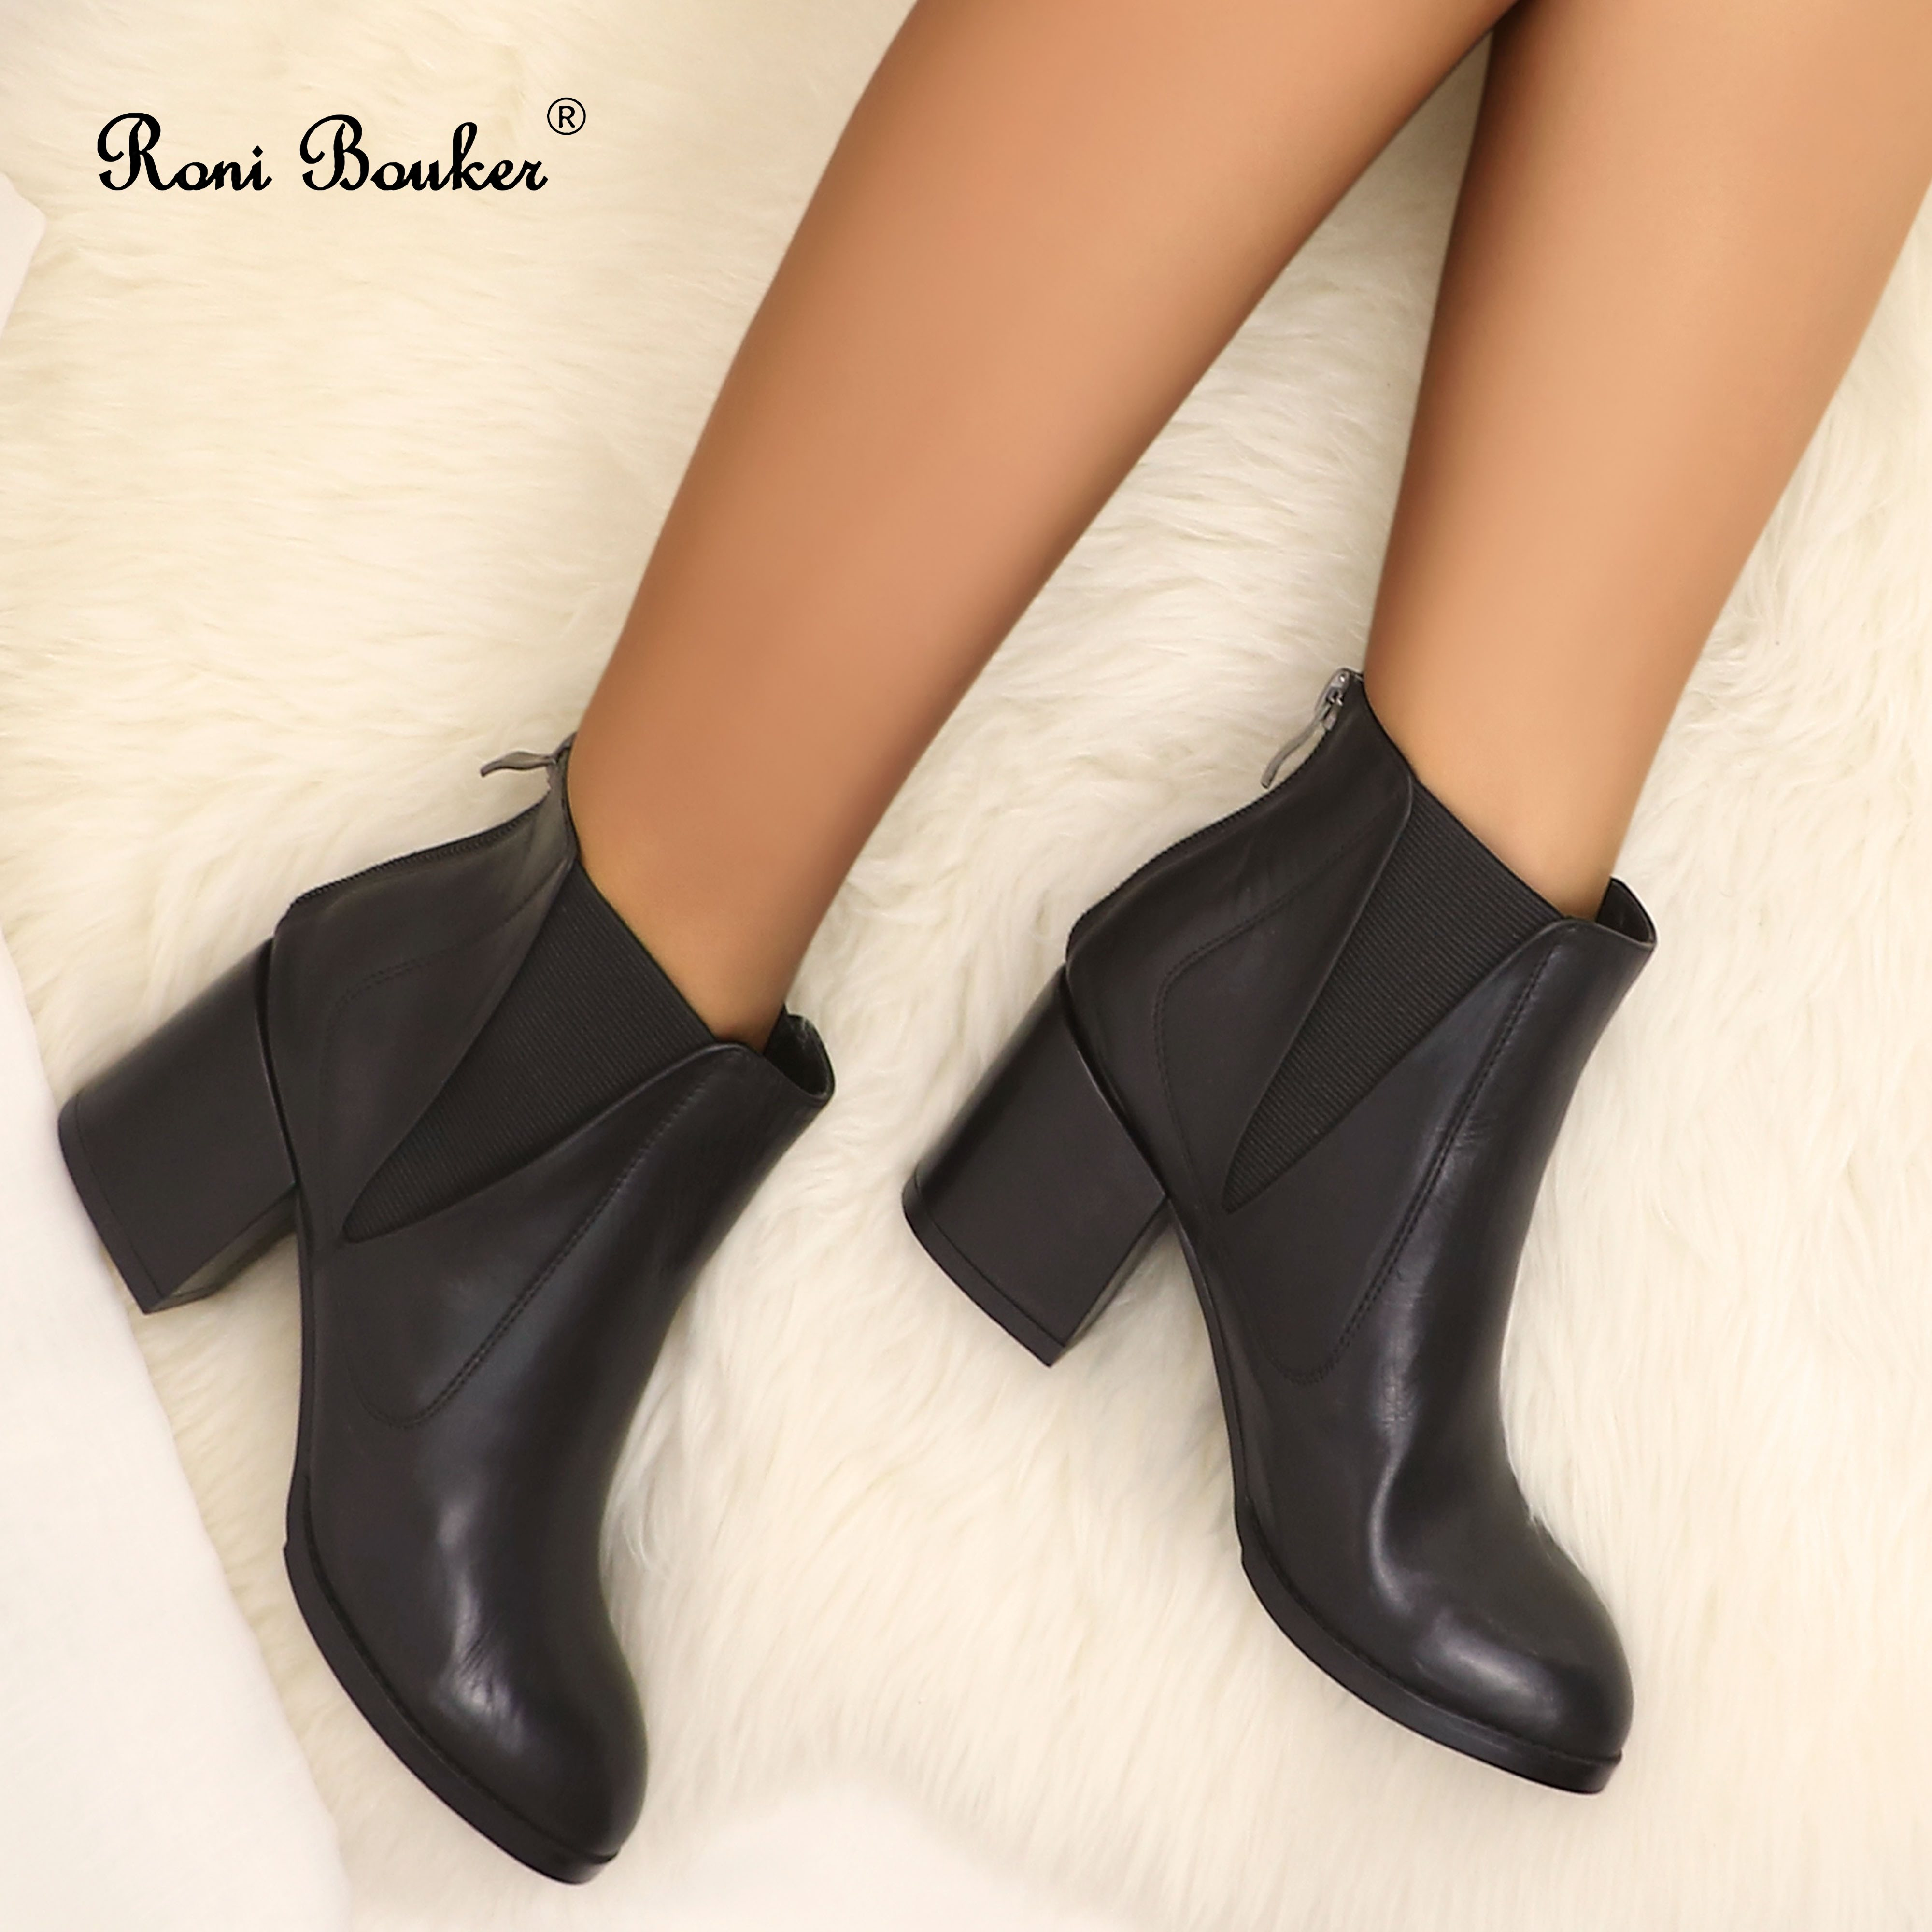 Roni Bouker Women Black Ankle Boots Genuine Leather Handmade Shoes Woman Chunky Boot Square Toe Heels DropshipRoni Bouker Women Black Ankle Boots Genuine Leather Handmade Shoes Woman Chunky Boot Square Toe Heels Dropship